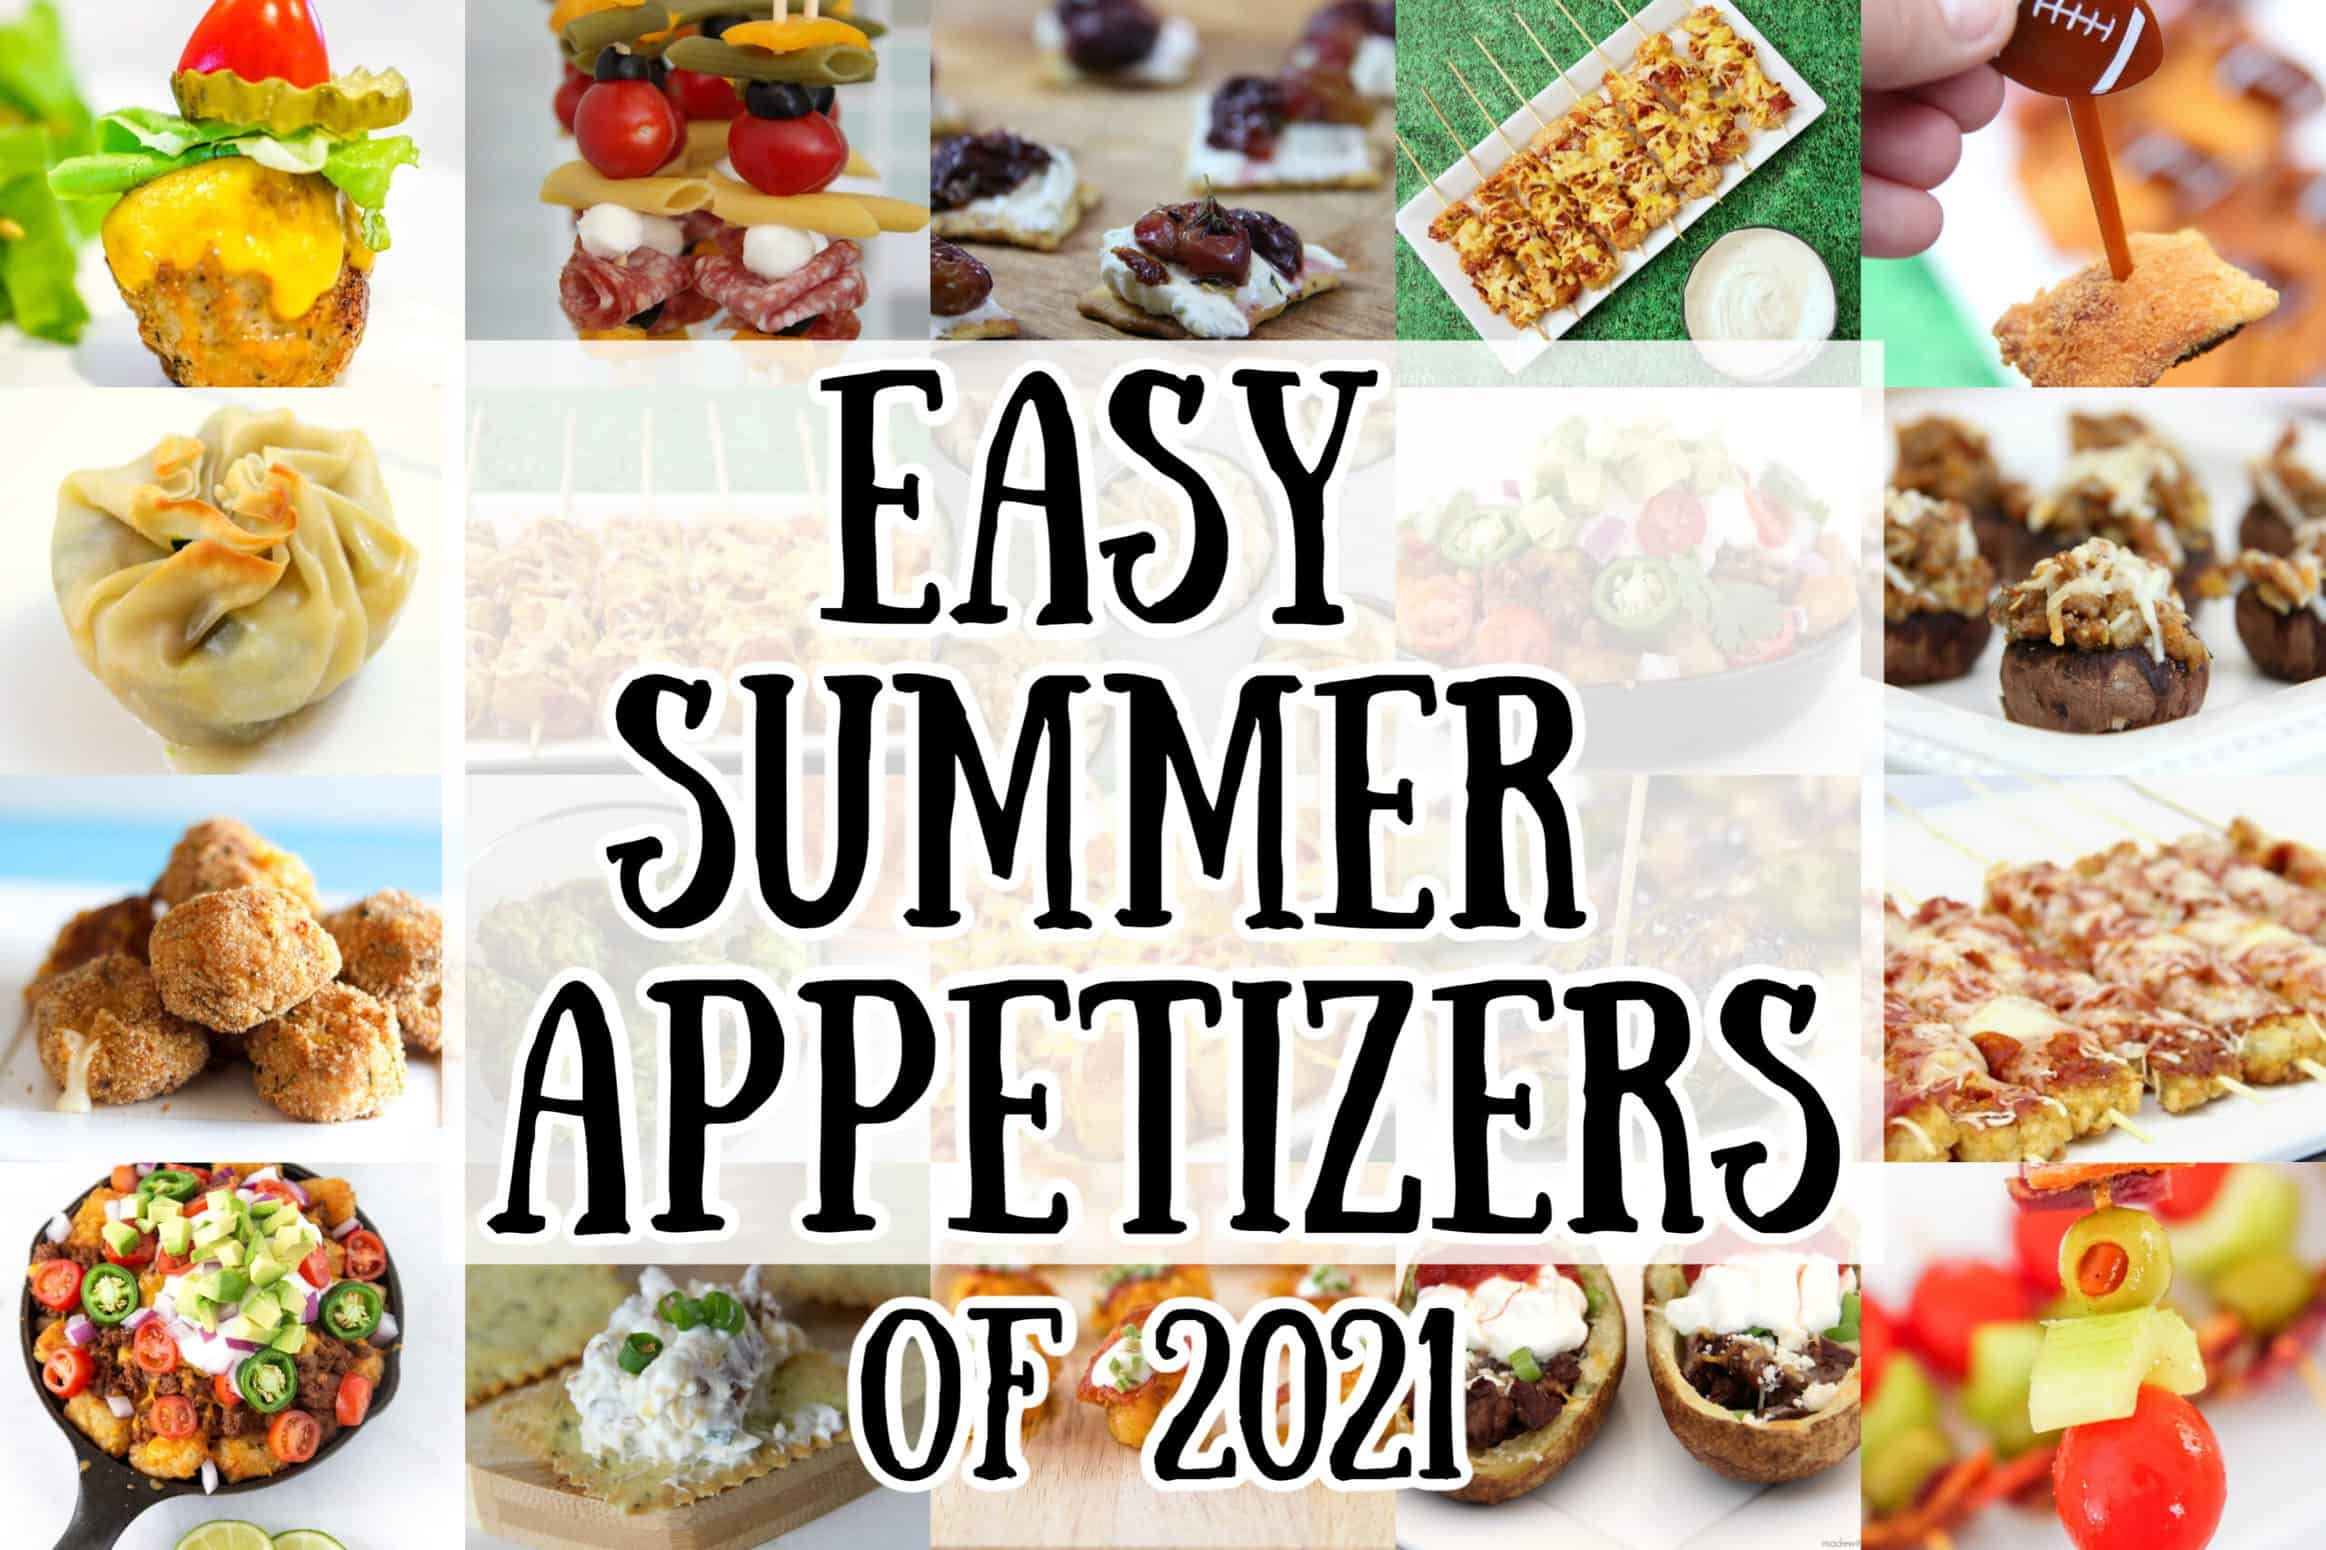 Summer Appetizers for 2021